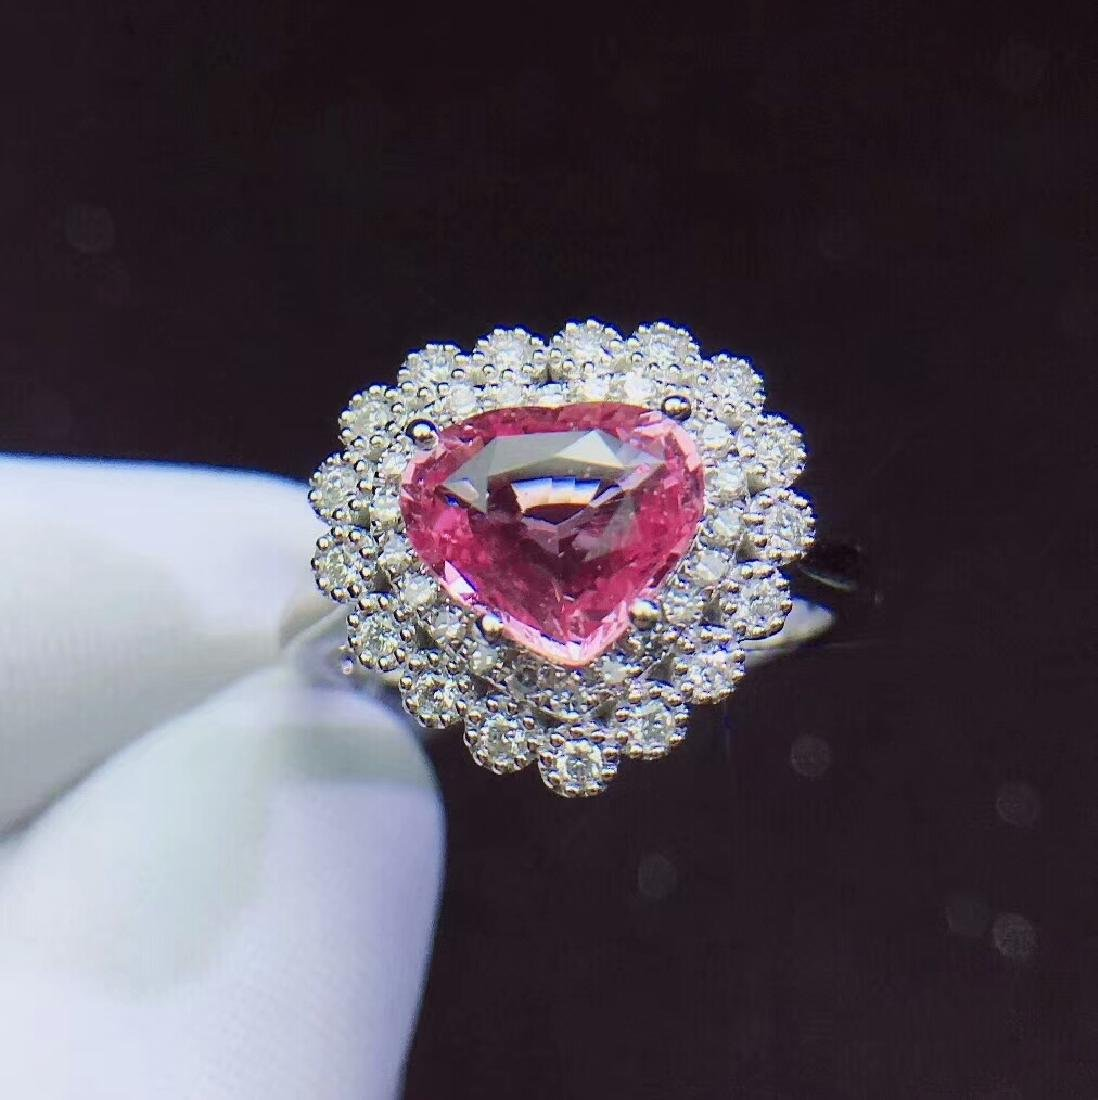 1.72ct Papalaccha Sapphire Ring in 18kt White Gold